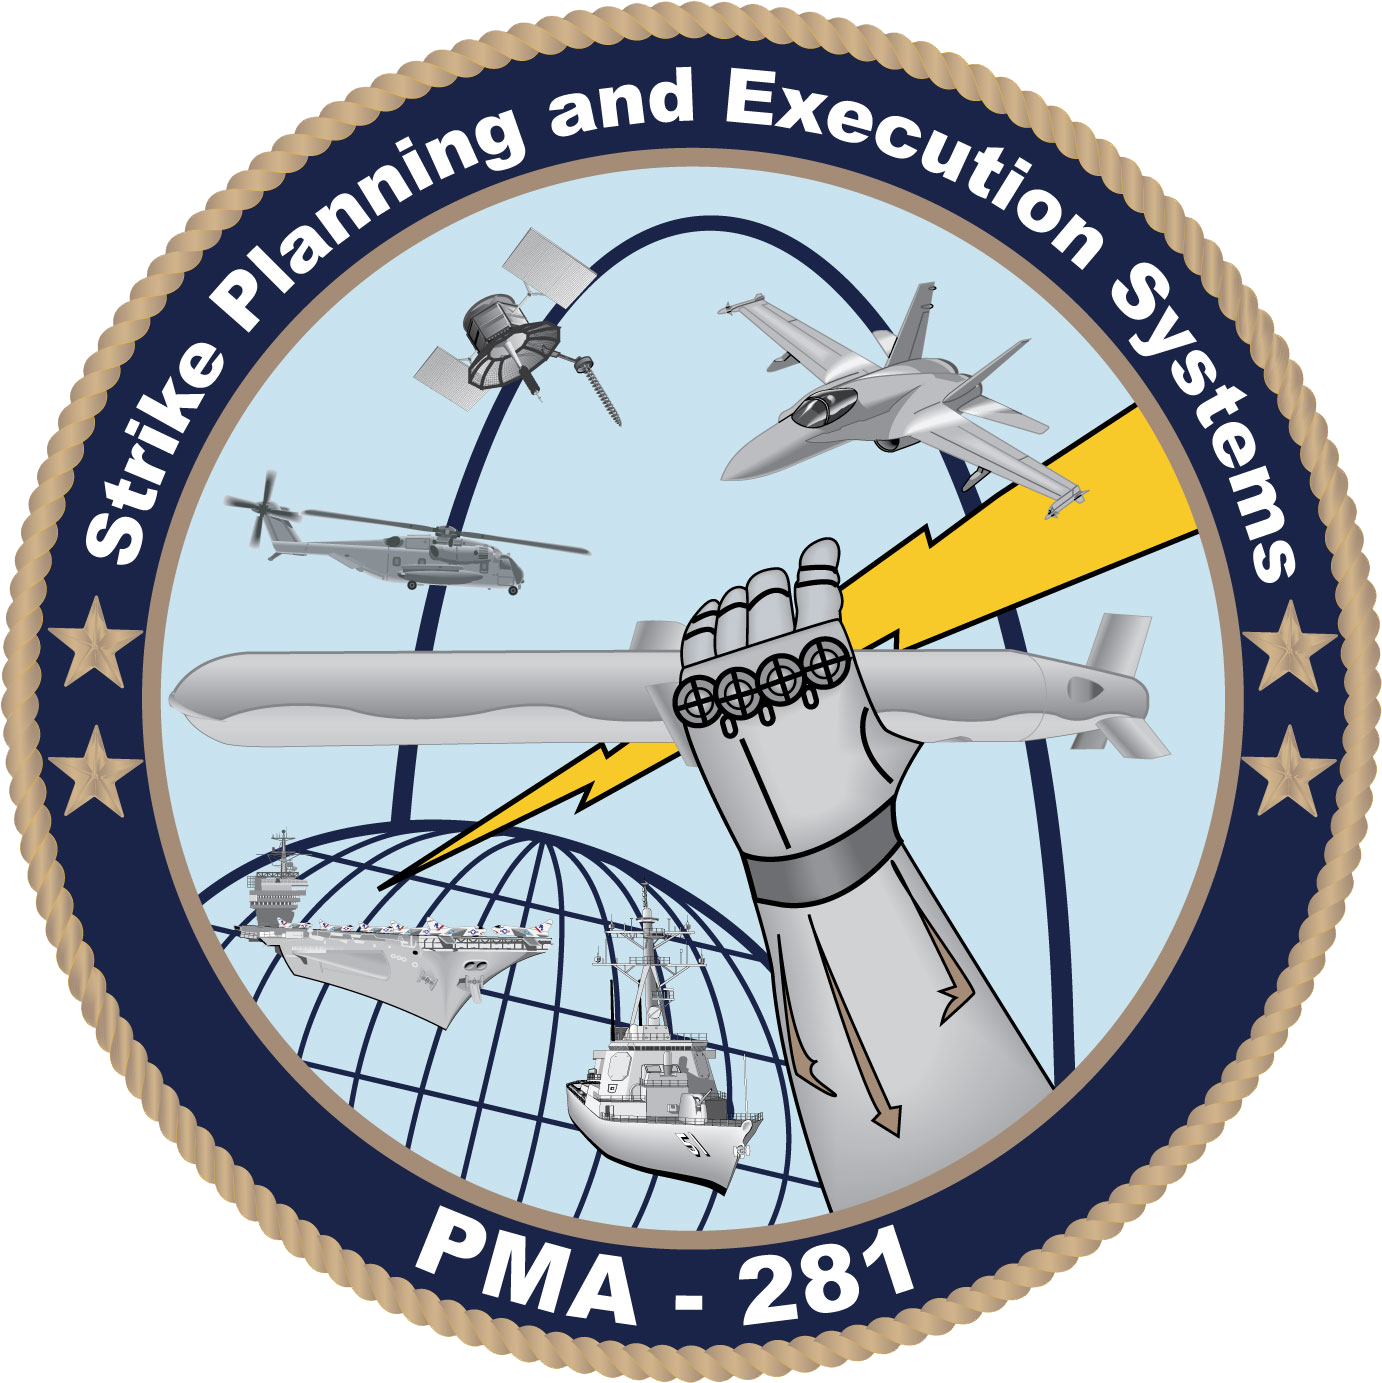 Strike planning and execution. Navy clipart naval